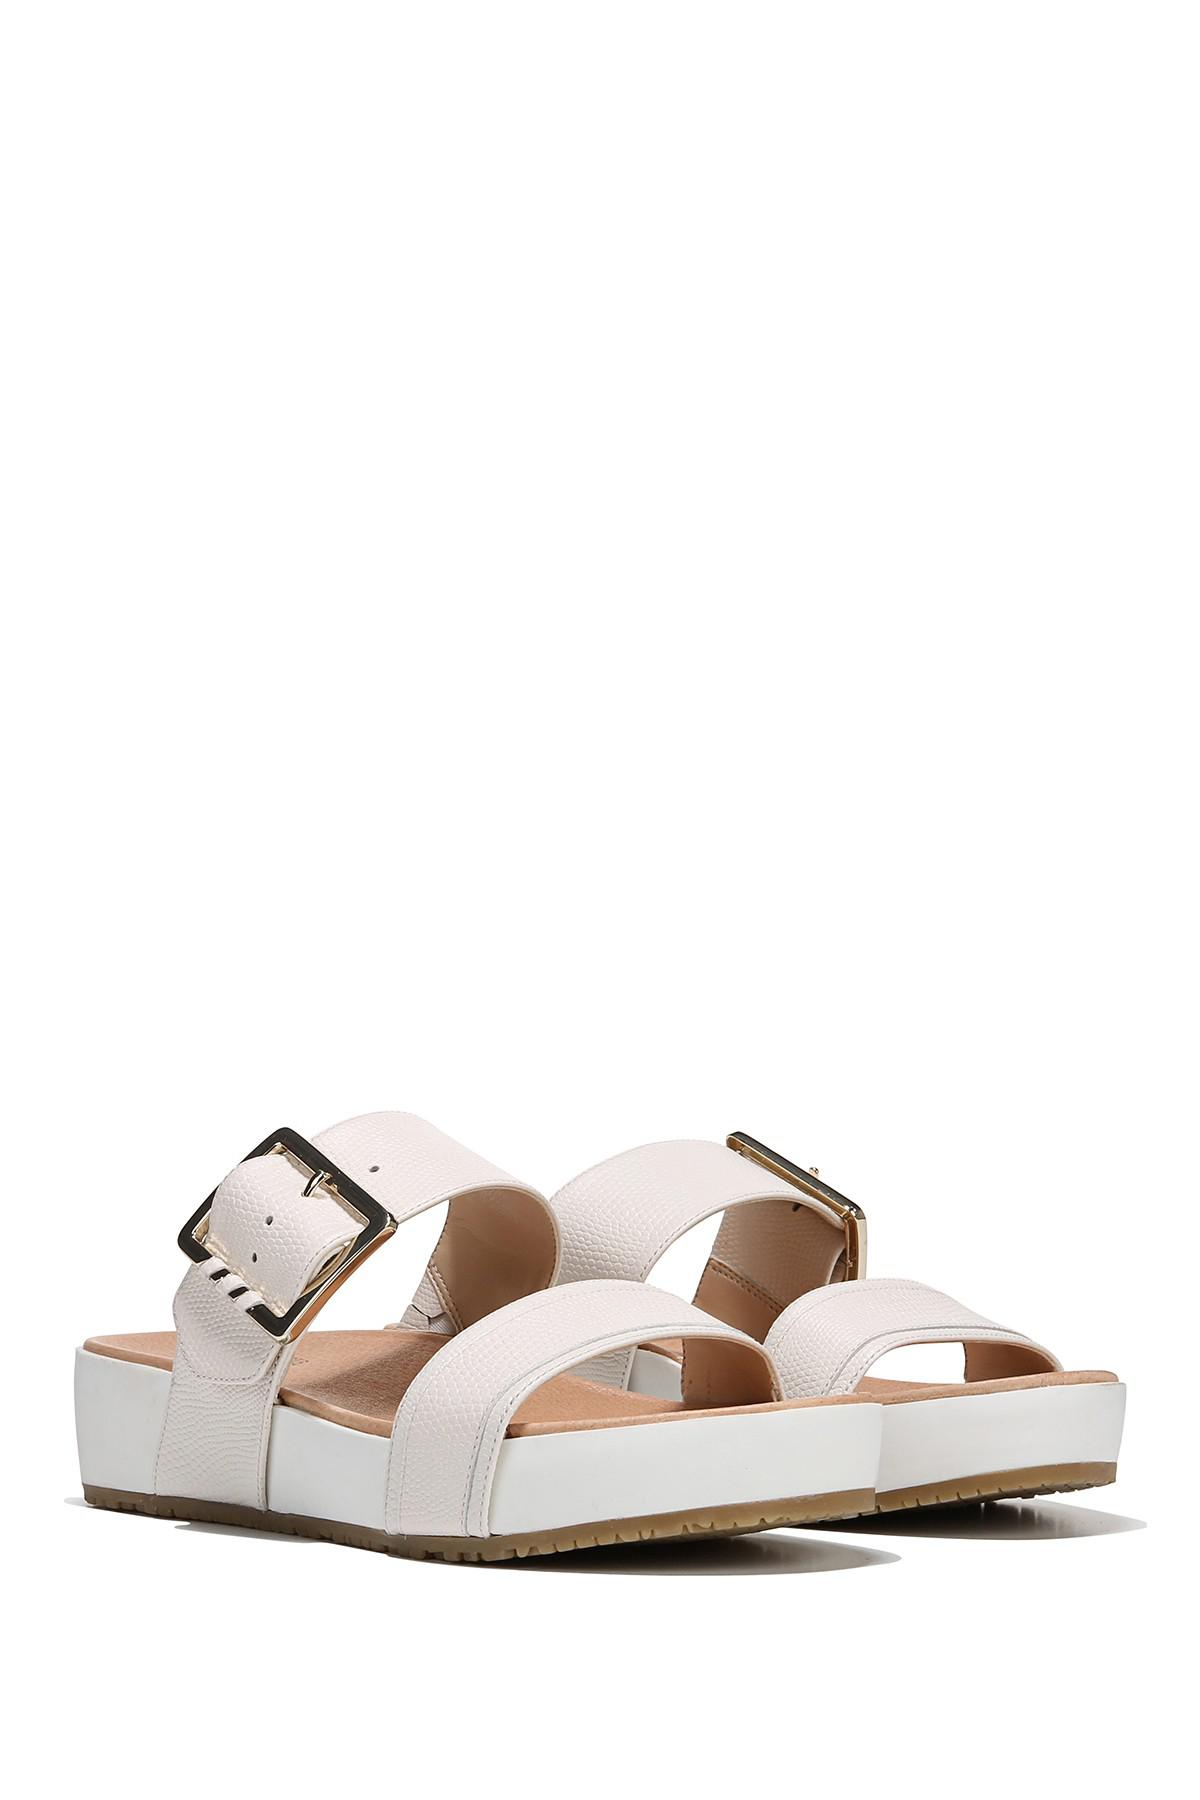 9b8bfb3f1c36 Lyst - Dr. Scholls Original Collection Frill Slide Sandal in White